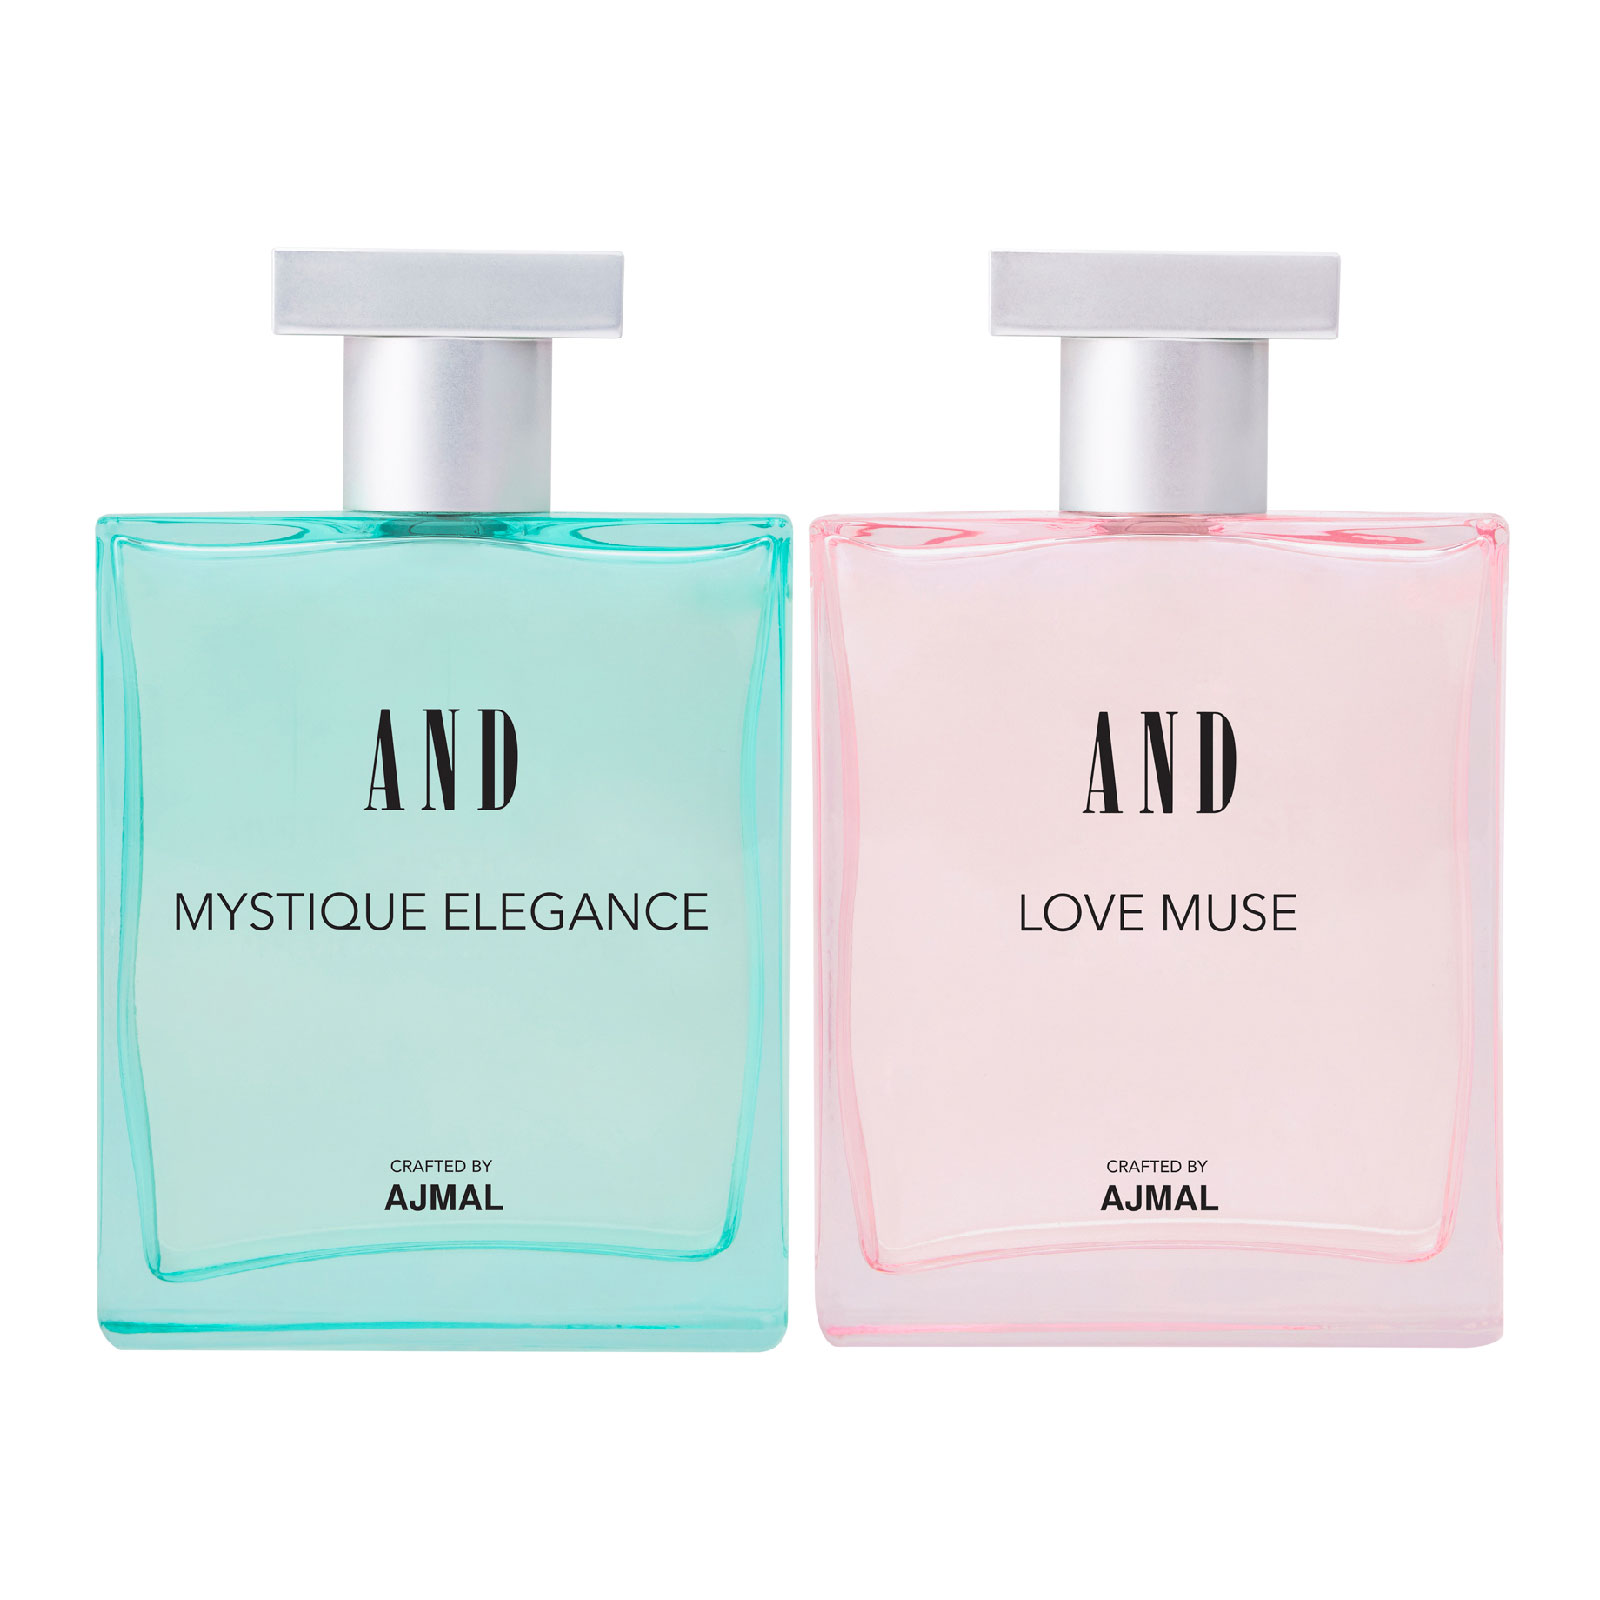 AND Crafted By Ajmal | AND Mystique Elegance & Love Muse Pack of 2 Eau De Parfum 100ML each for Women Crafted by Ajmal + 2 Parfum Testers